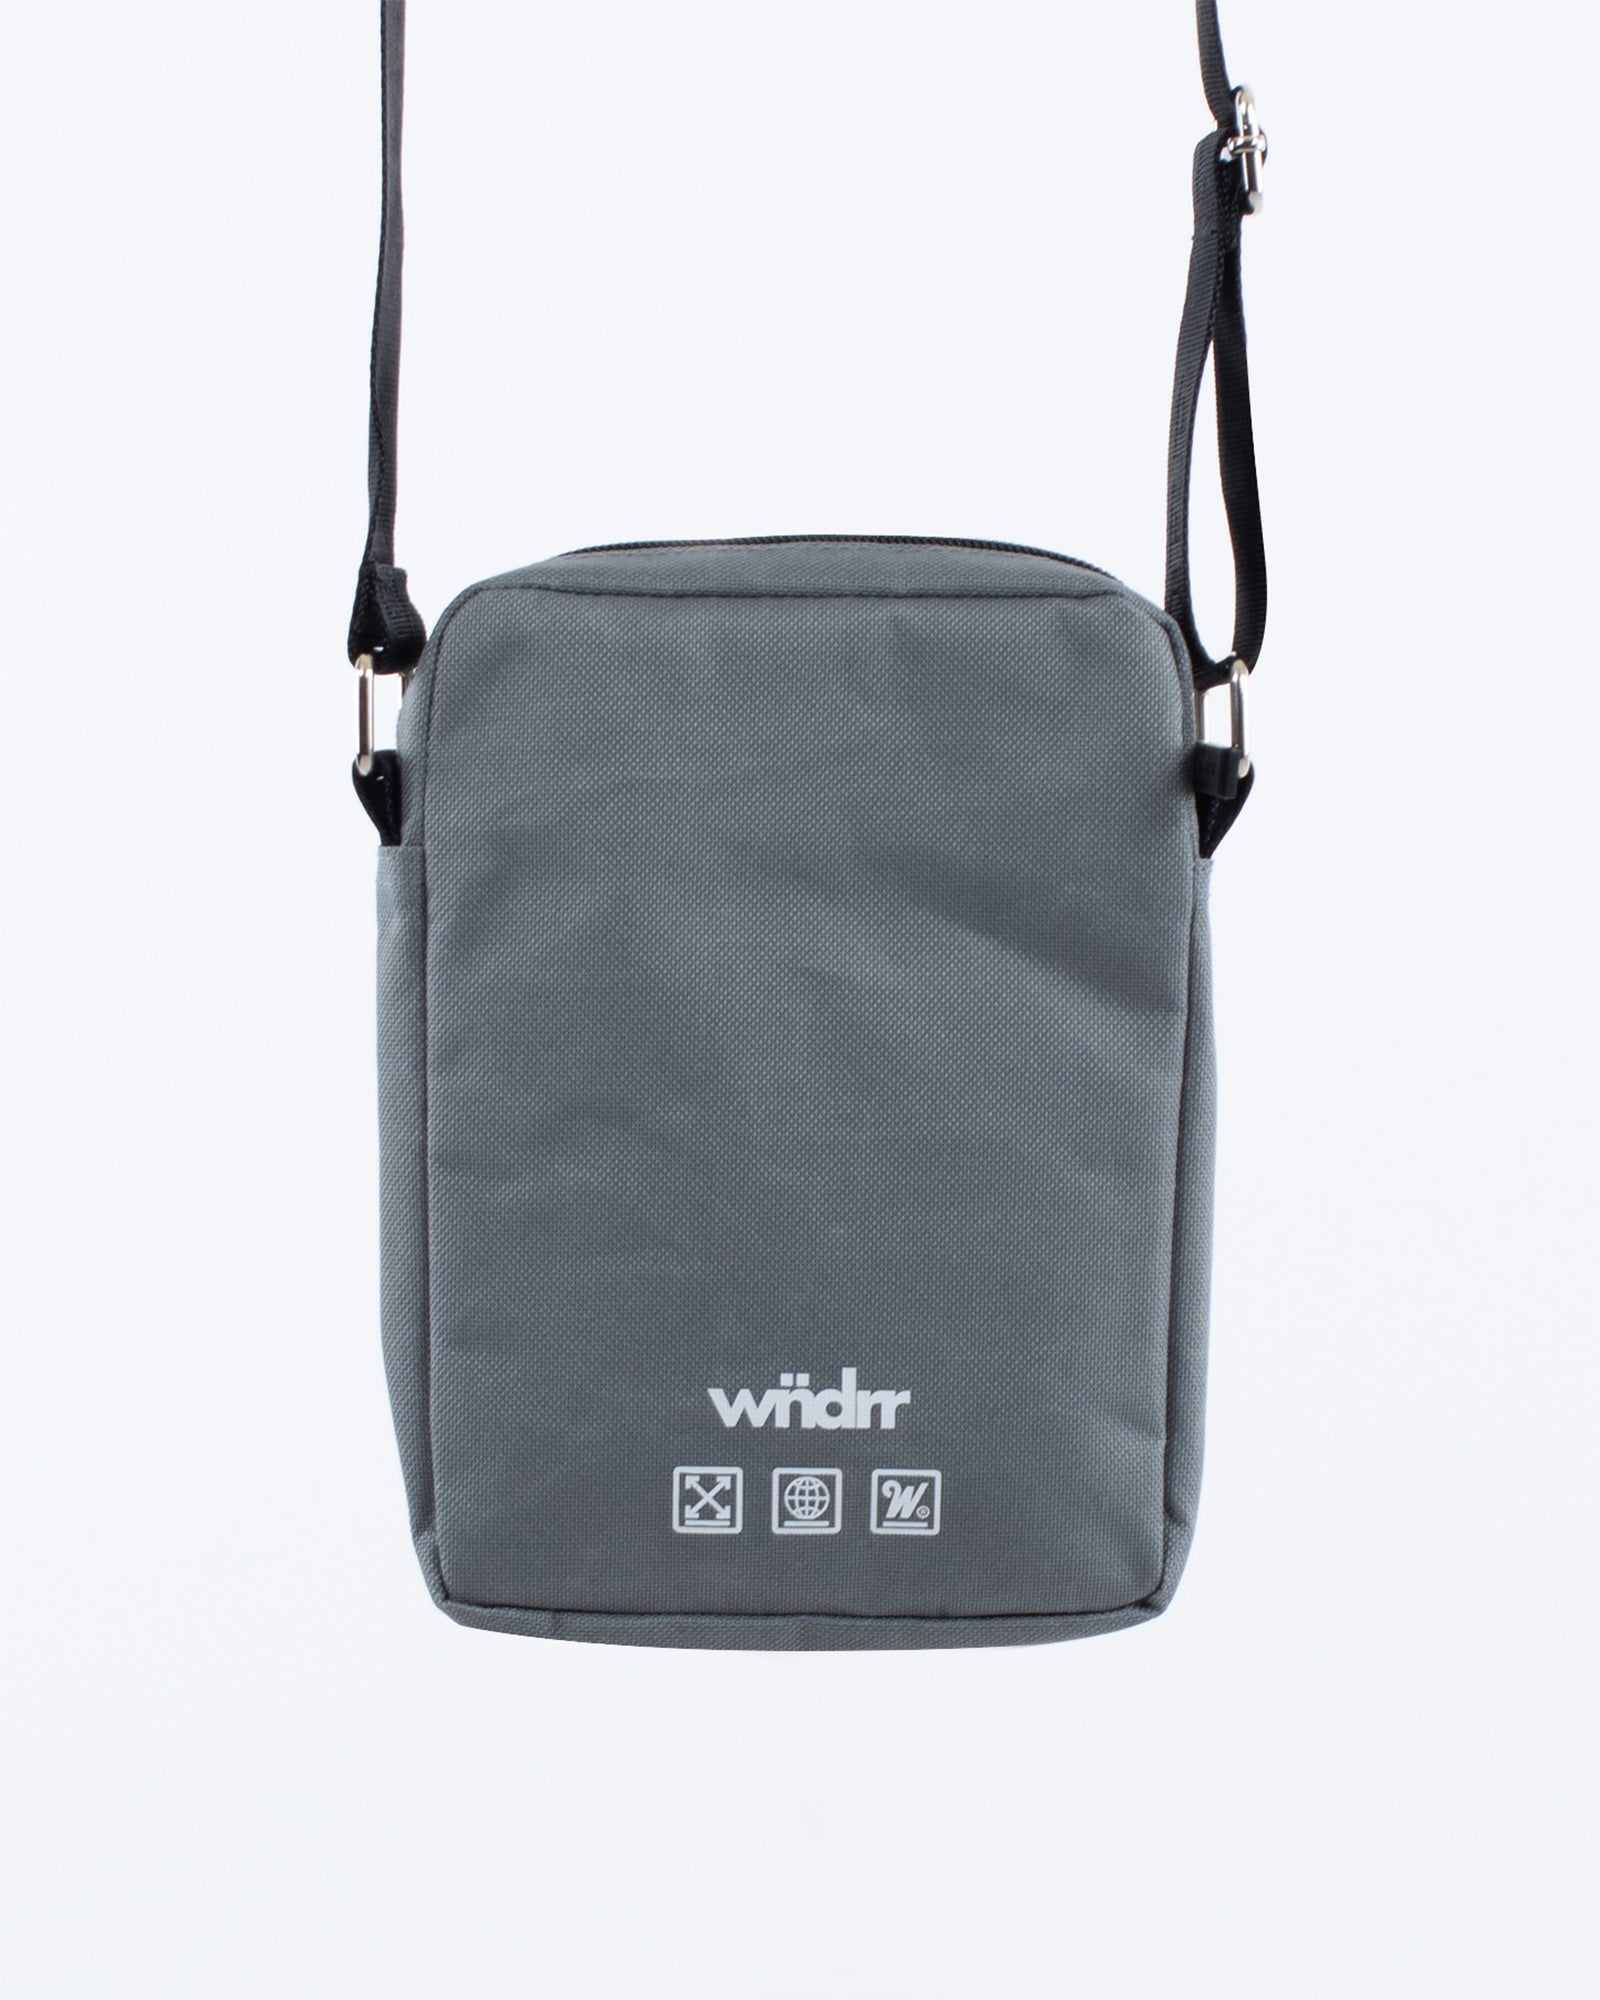 Wndrr Clutch Side Bag - Grey